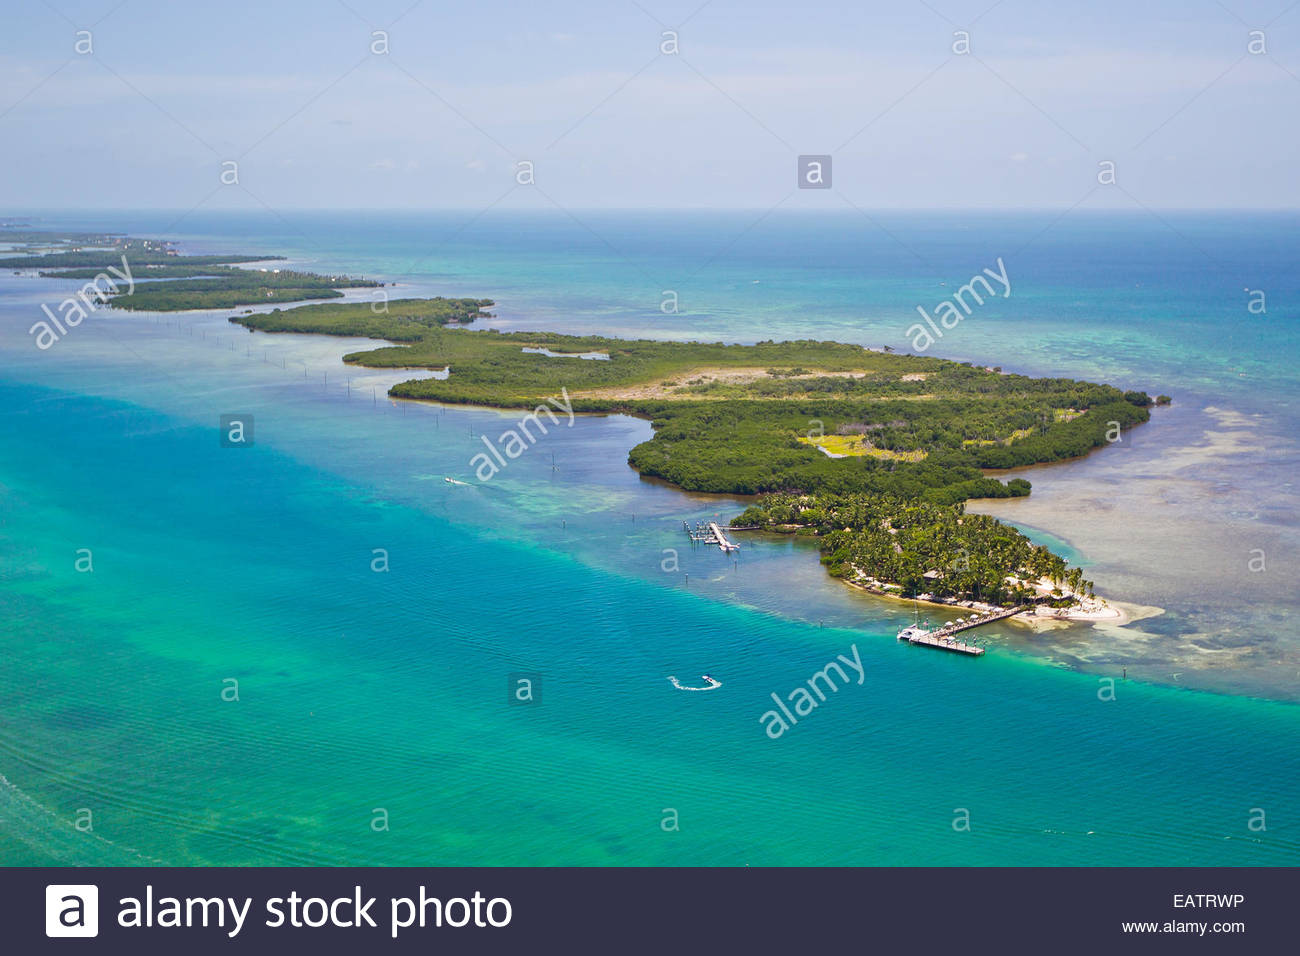 Aerial view of a secluded island with only a few homes. - Stock Image